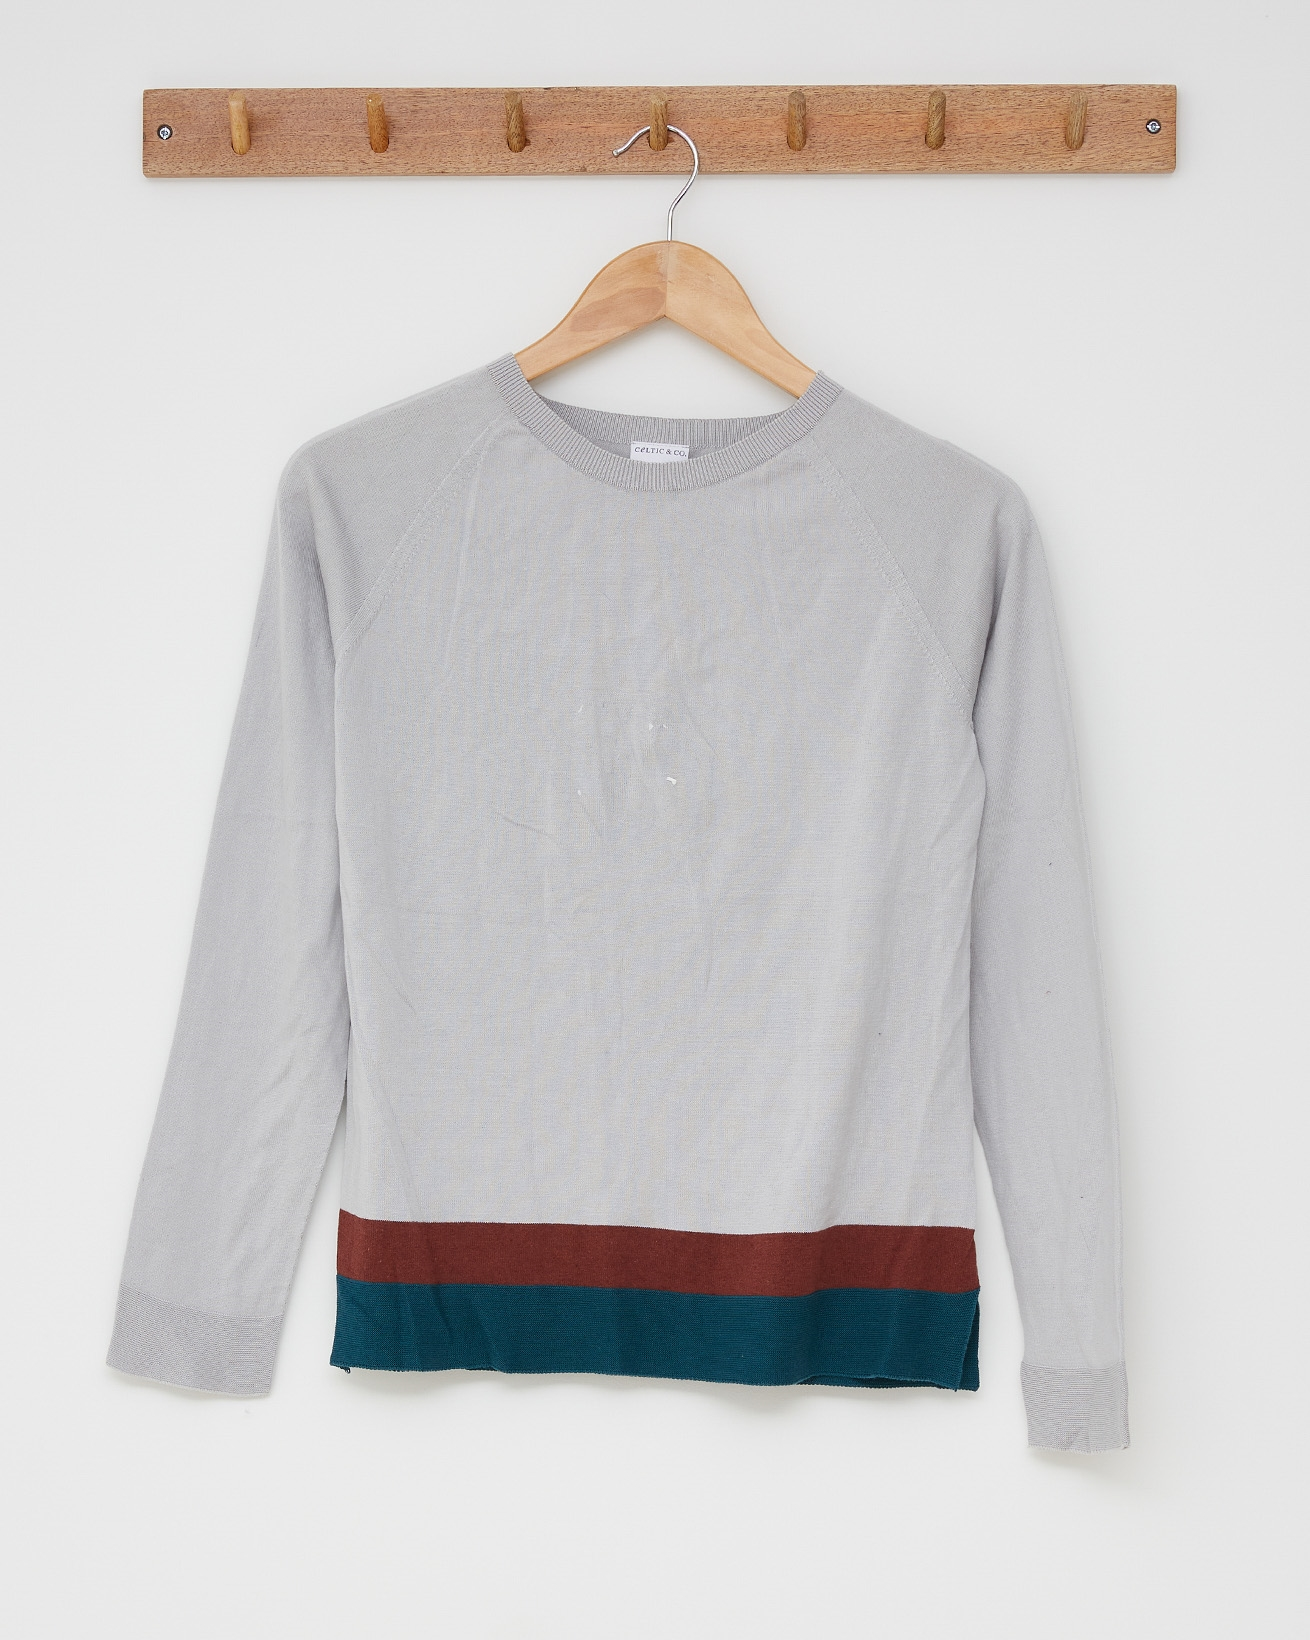 Cotton crew top - Size Small - Mineral, Icelandic blue, maroon stripe - 2514